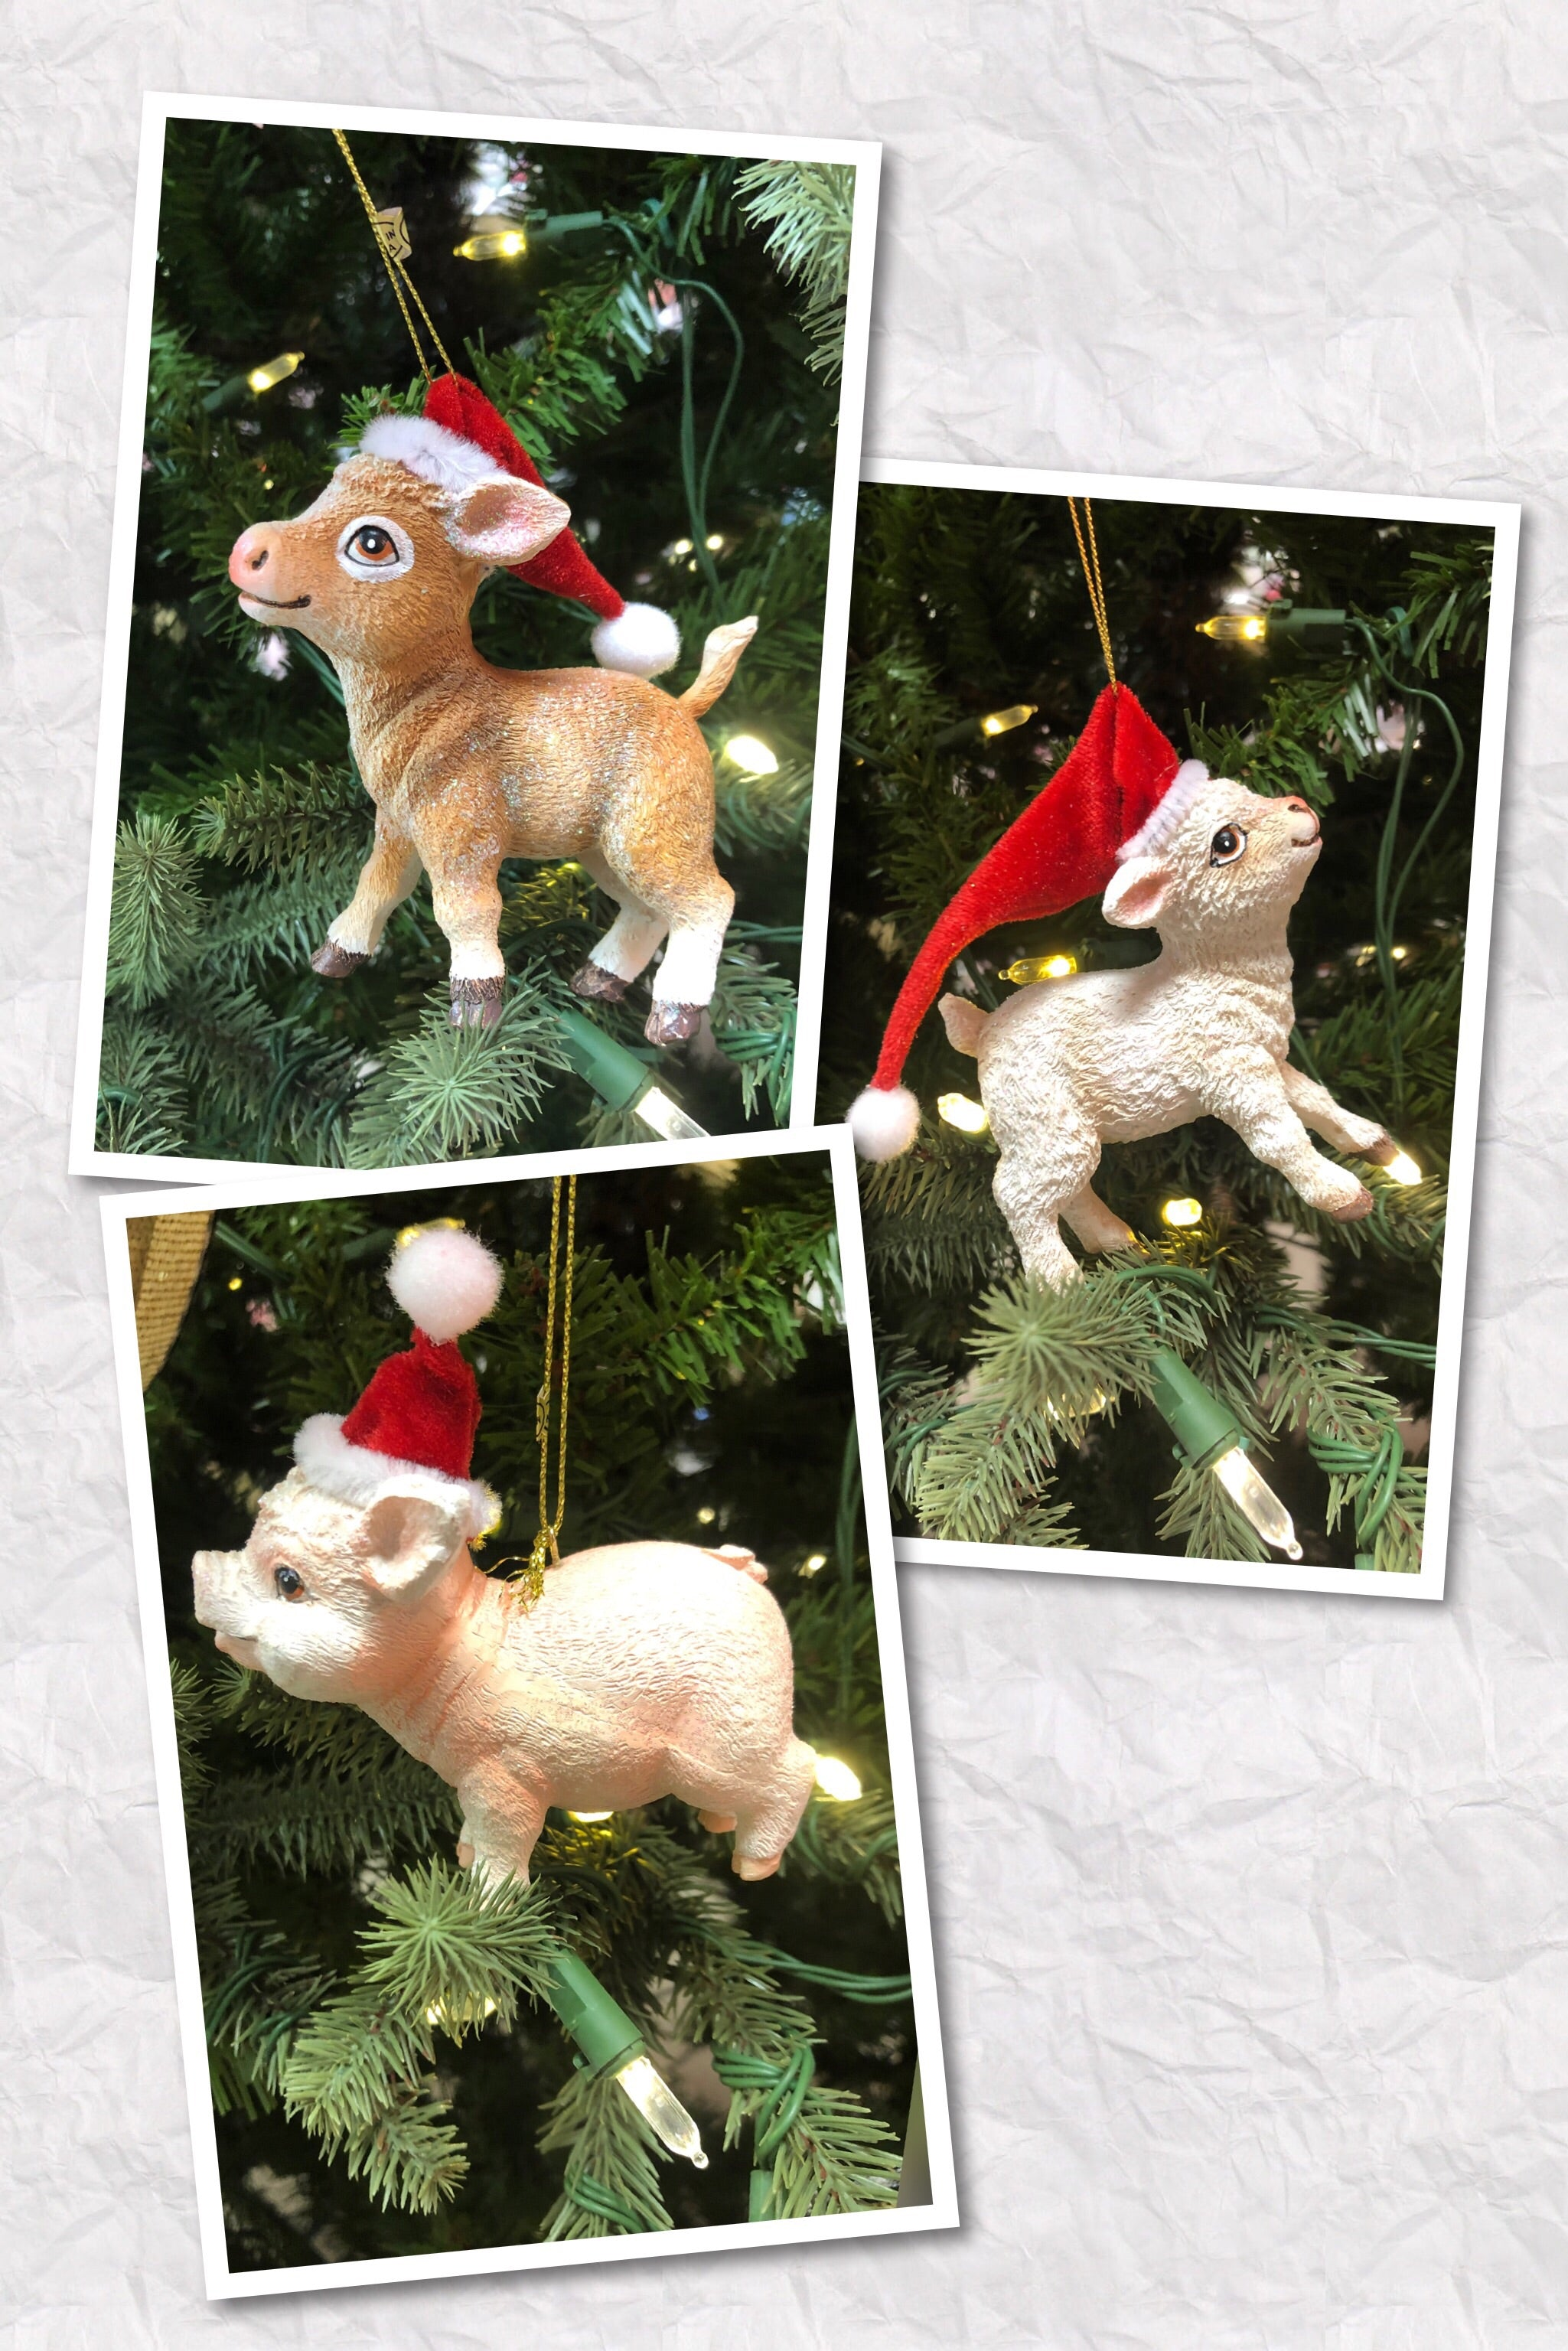 Christmas Farm Yard Animals Resin Ornament